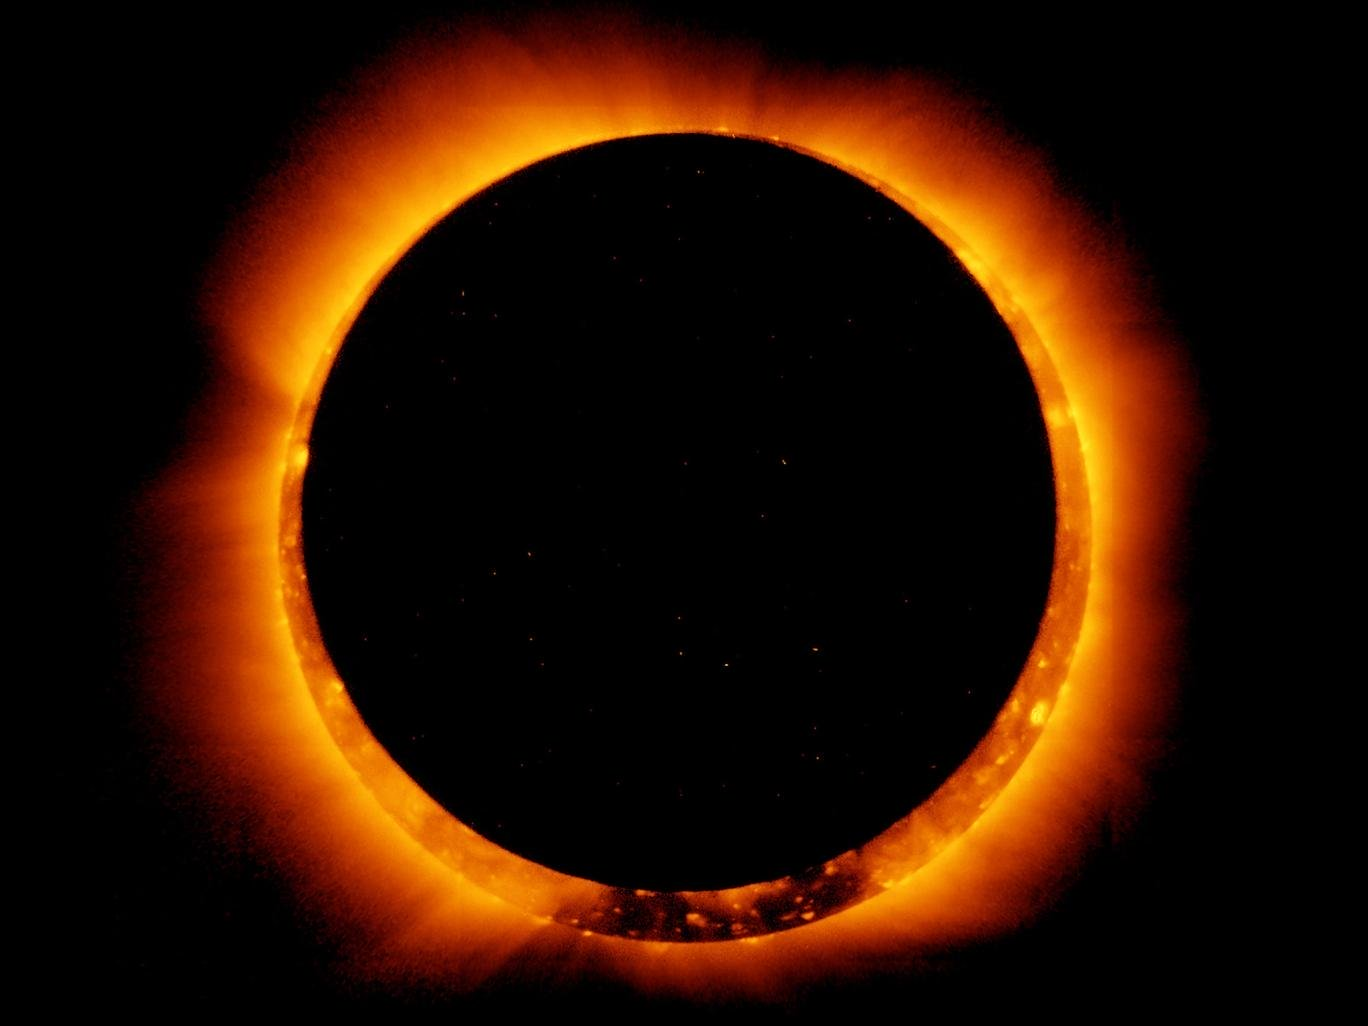 sunday s solar eclipse will be fully visible in karachi pmd